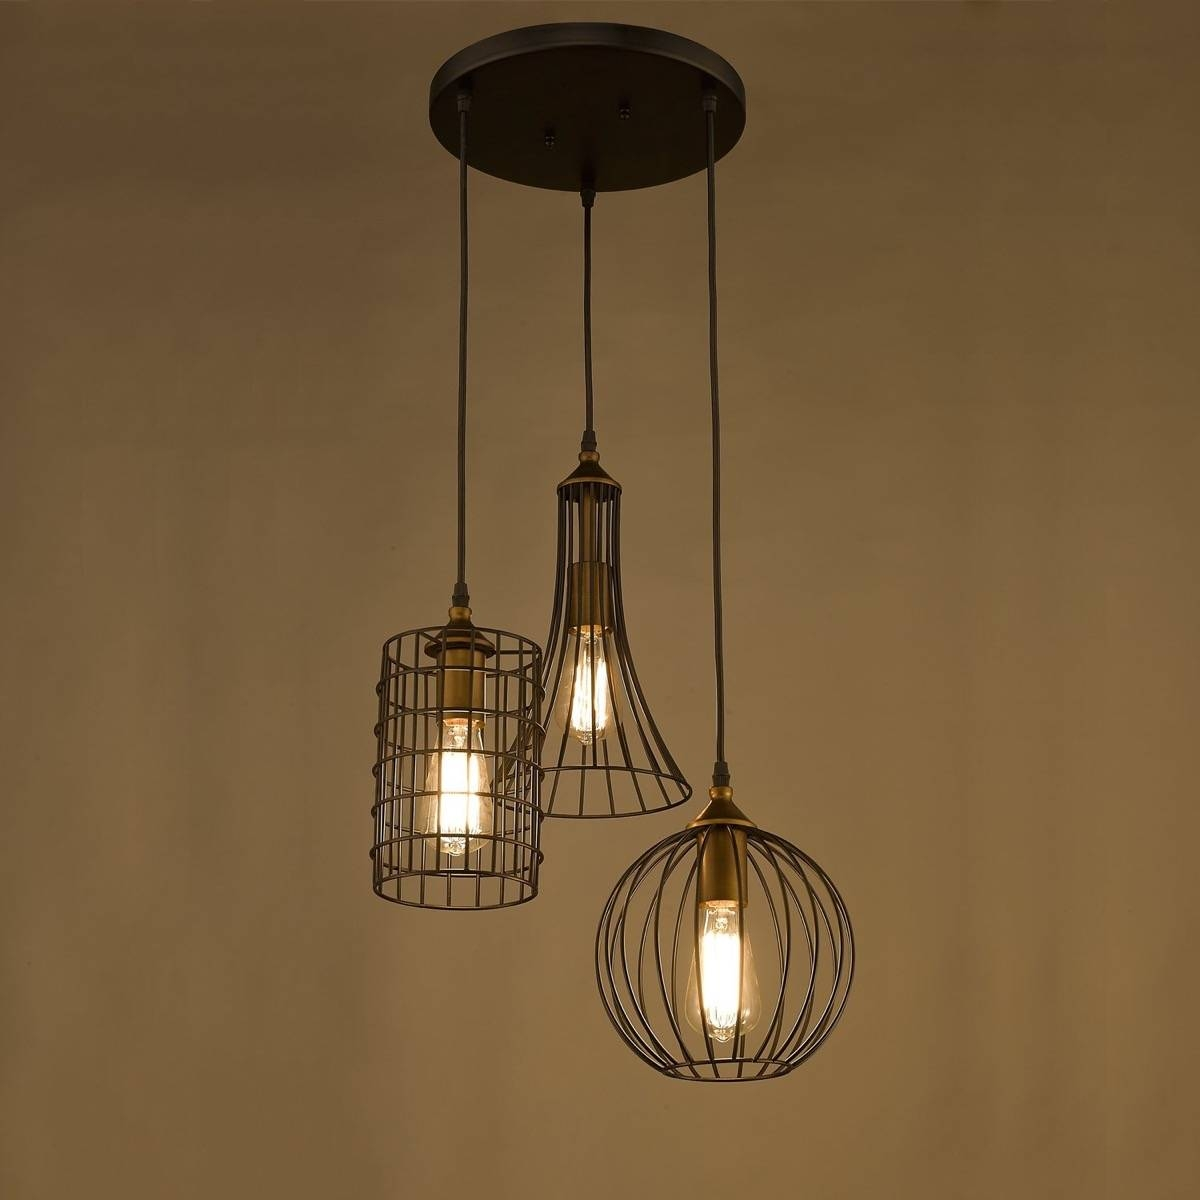 Industrial Pendant Lighting Fixtures : Some Style Industrial throughout Industrial Style Pendant Lights Fixtures (Image 6 of 15)